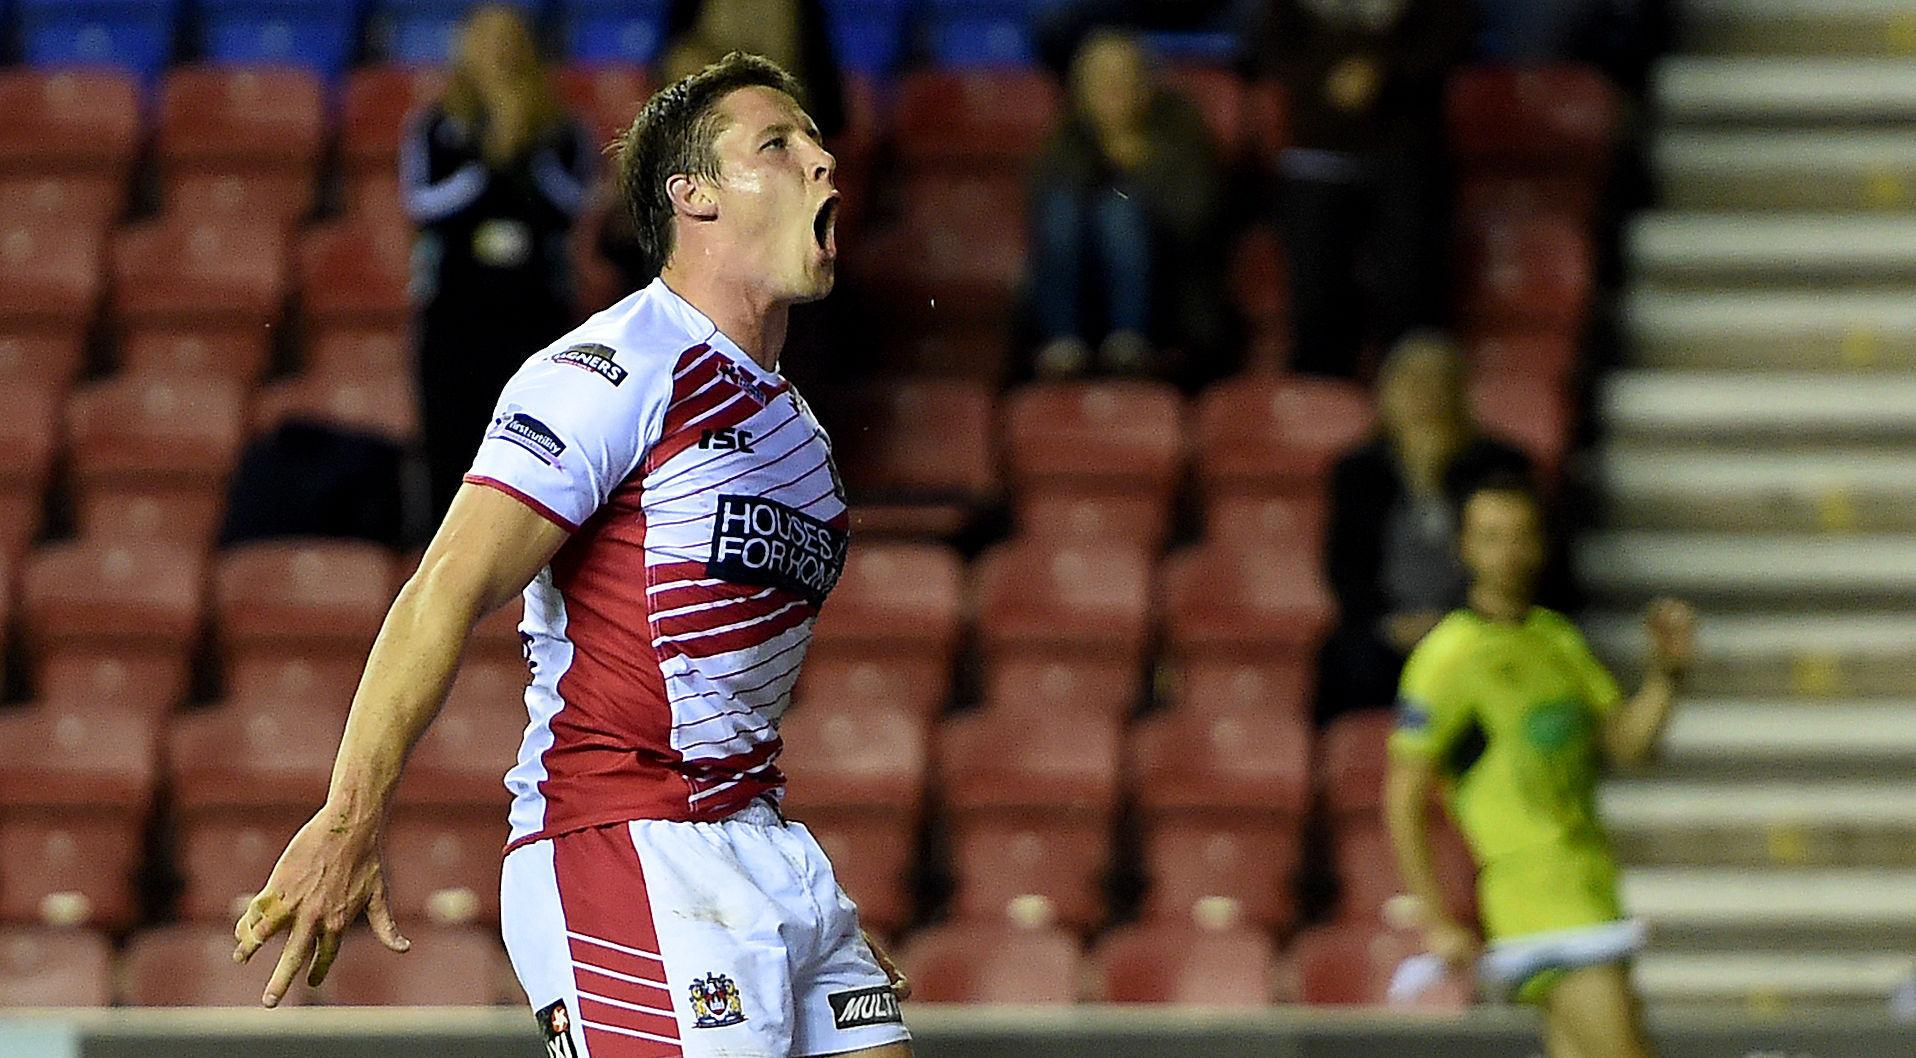 Joel Tomkins has opened-up about his foul-mouthed rant in the bar